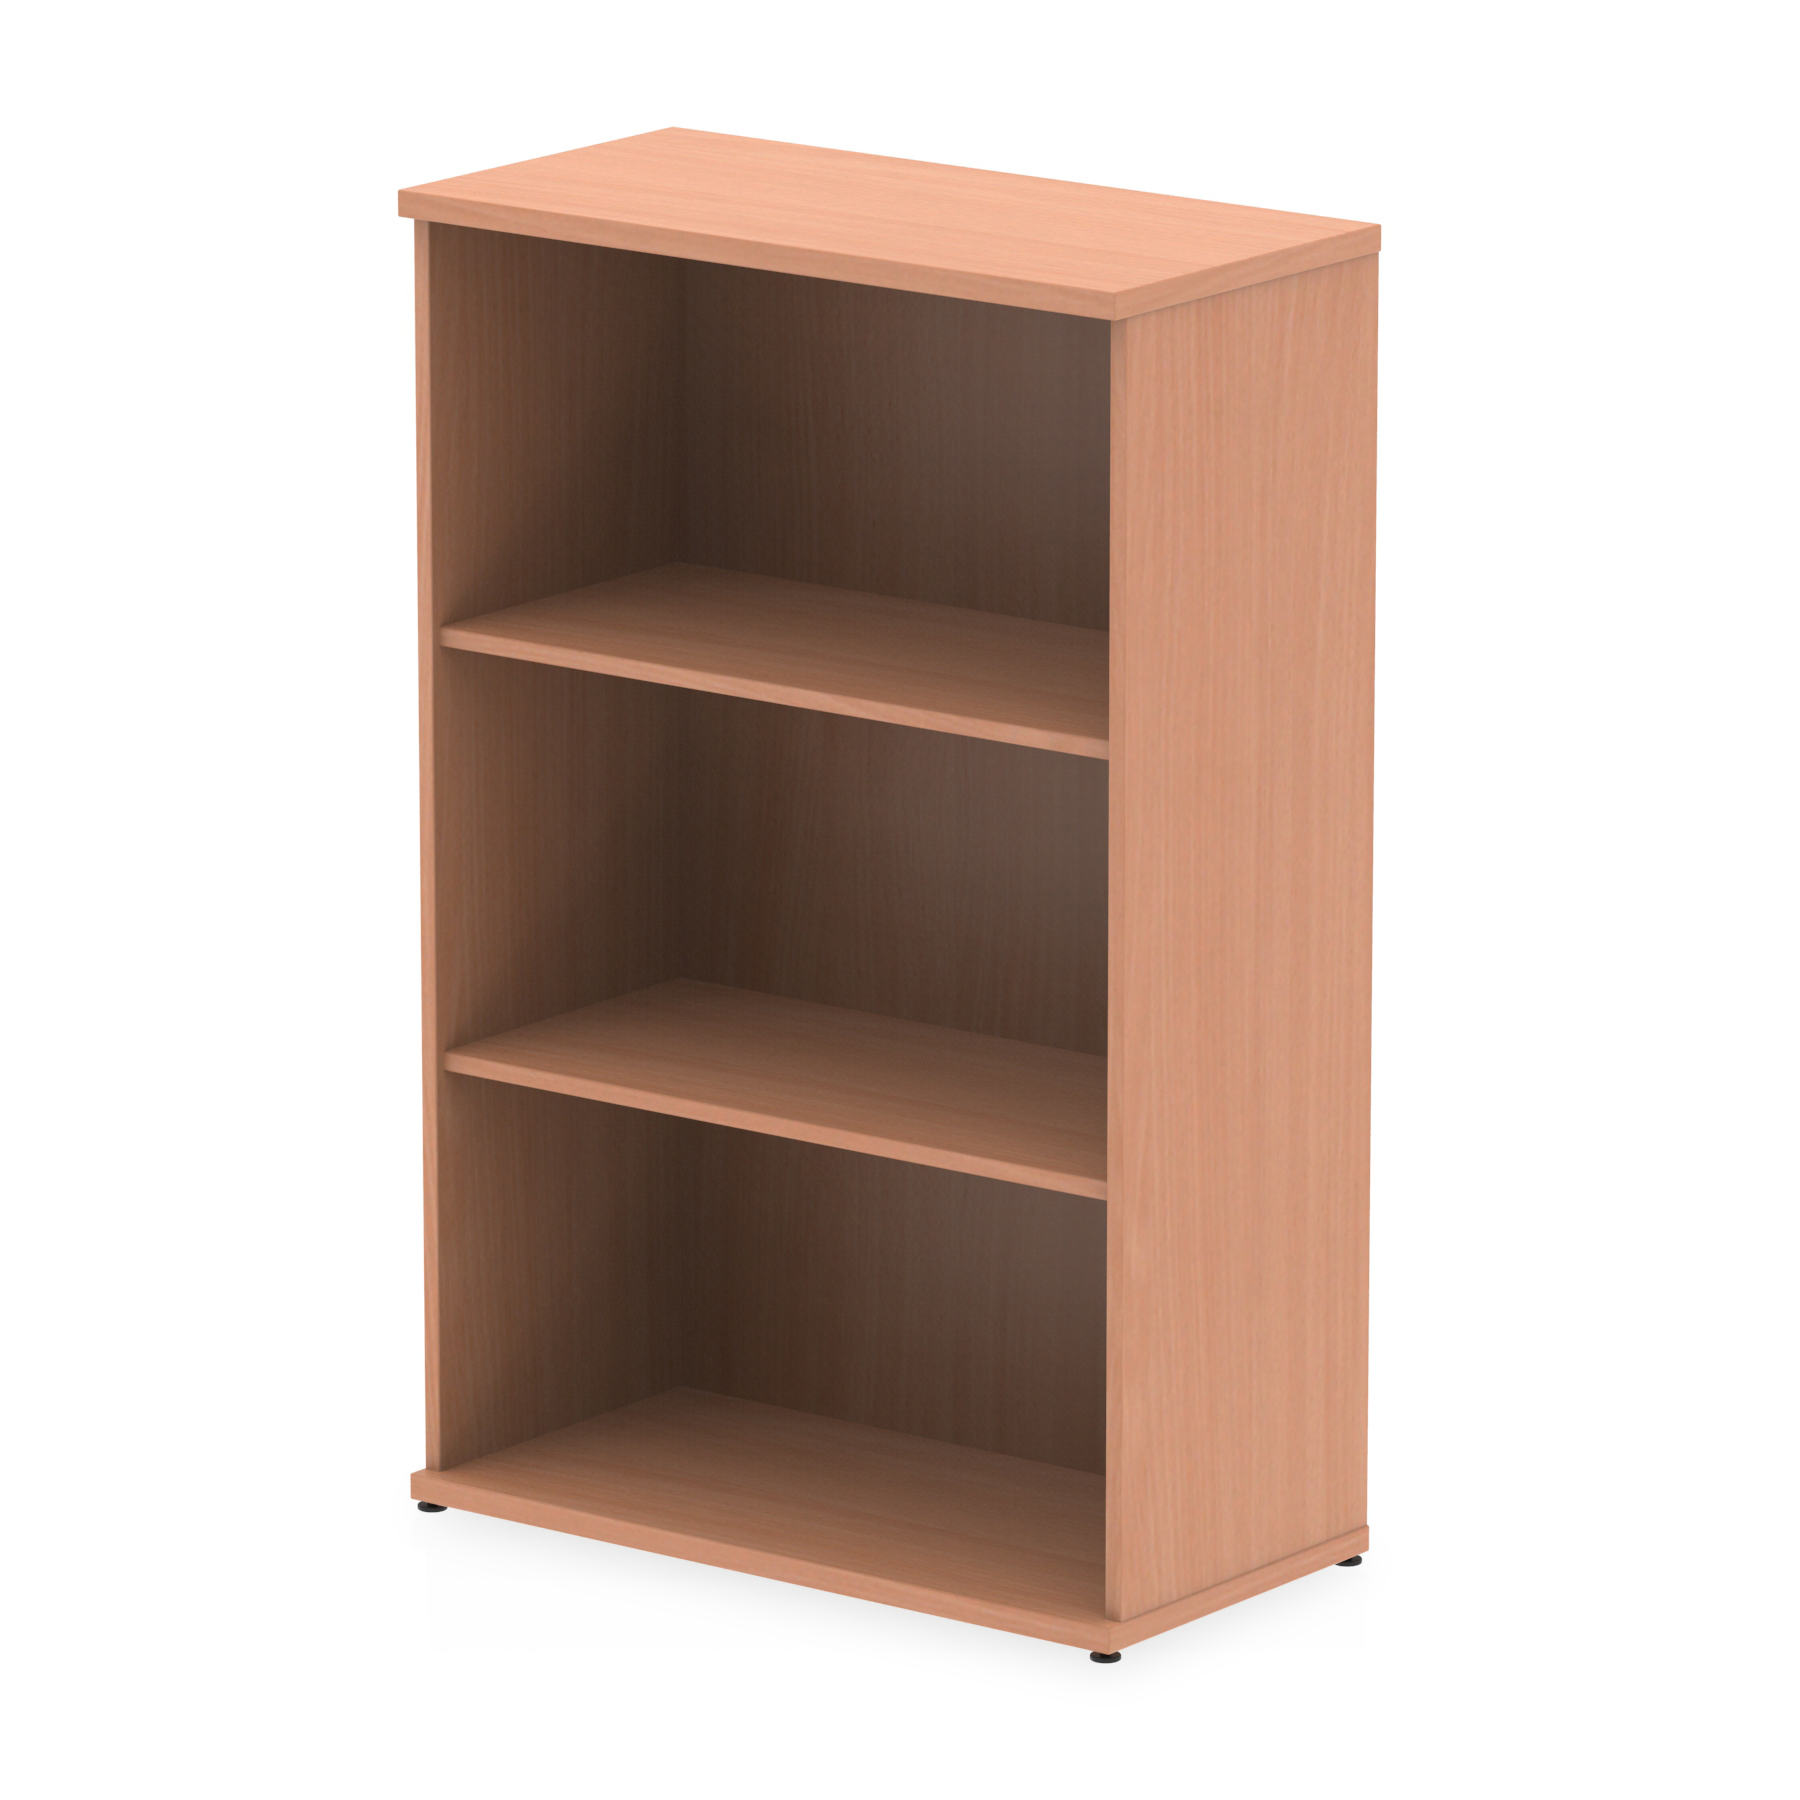 Up To 1200mm High Impulse 1200mm Bookcase Beech I000050